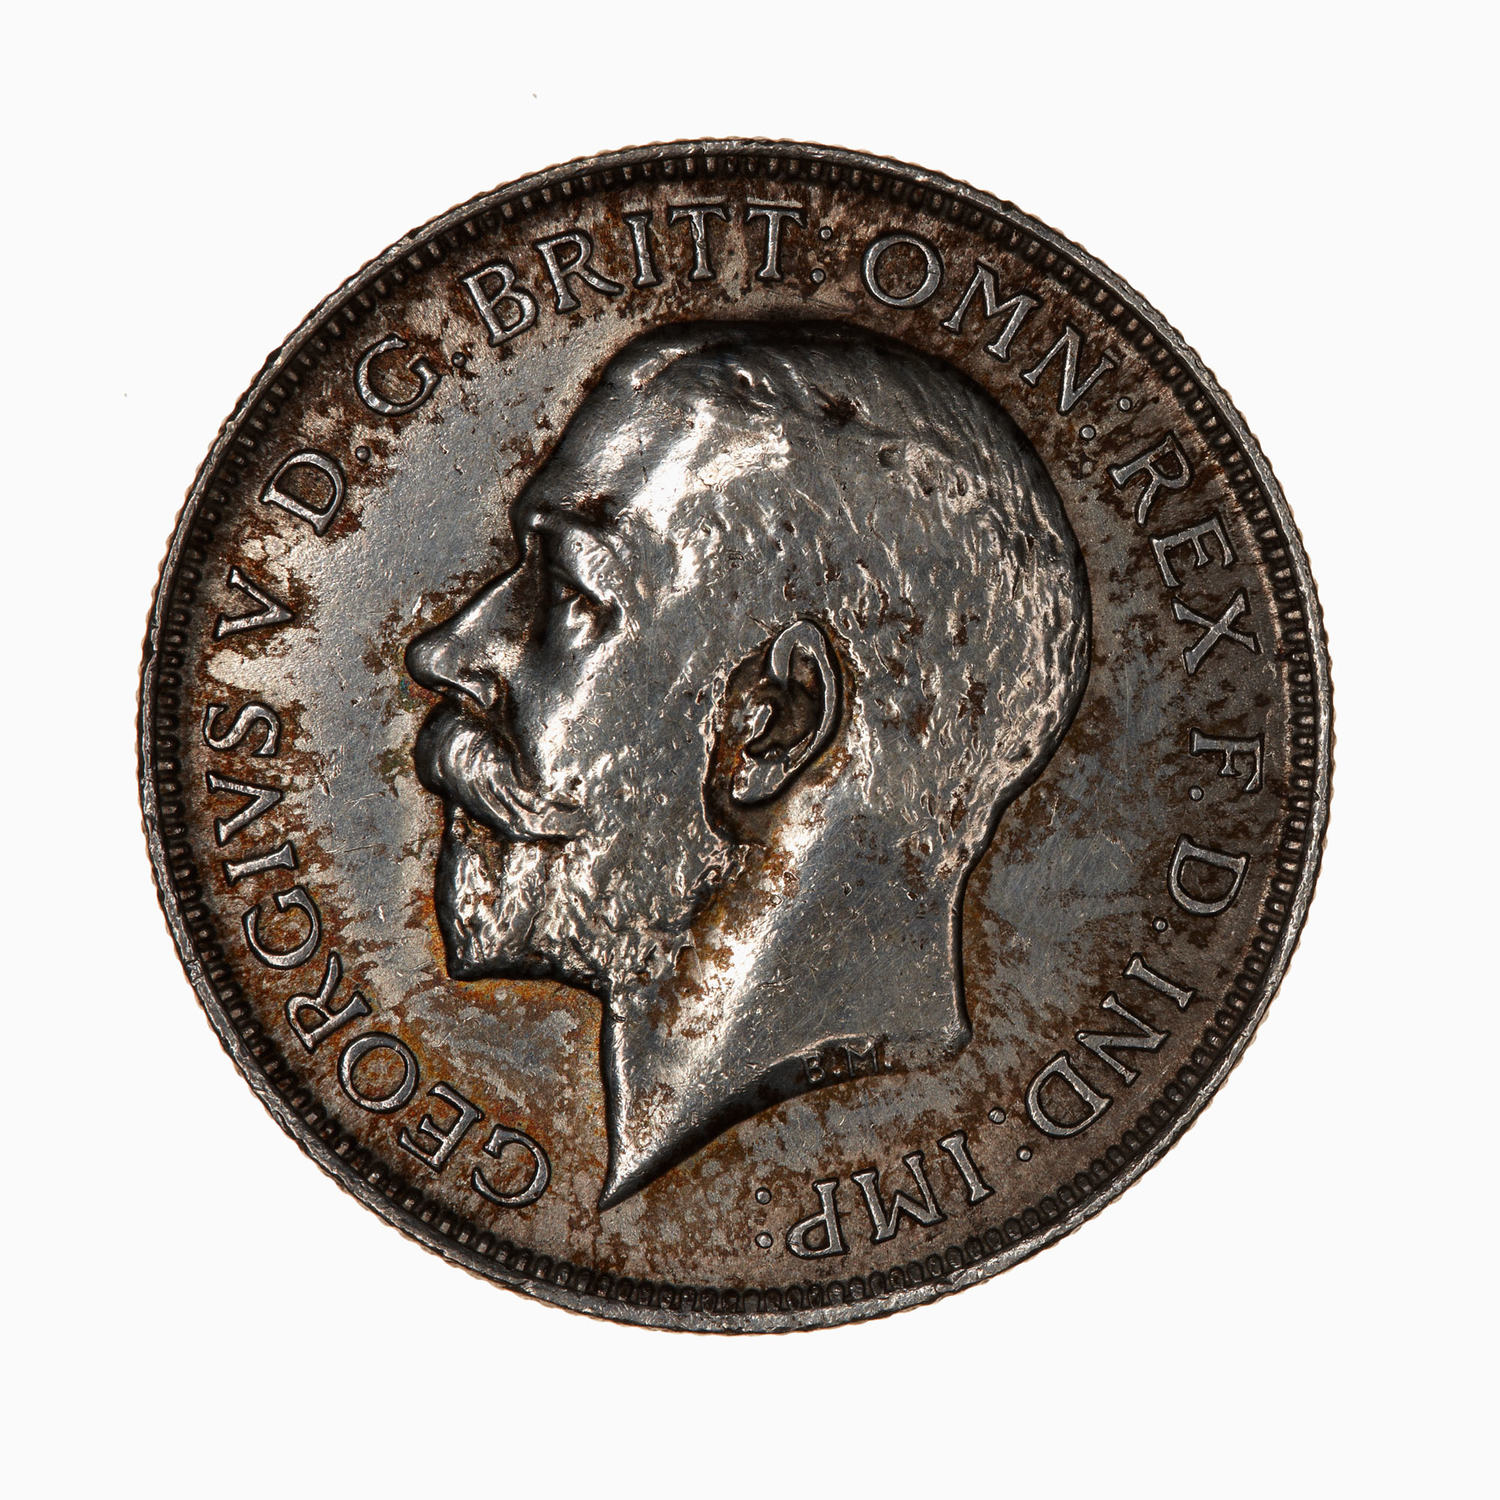 Florin 1911: Photo Coin - Florin (2 Shillings), George V, Great Britain, 1911